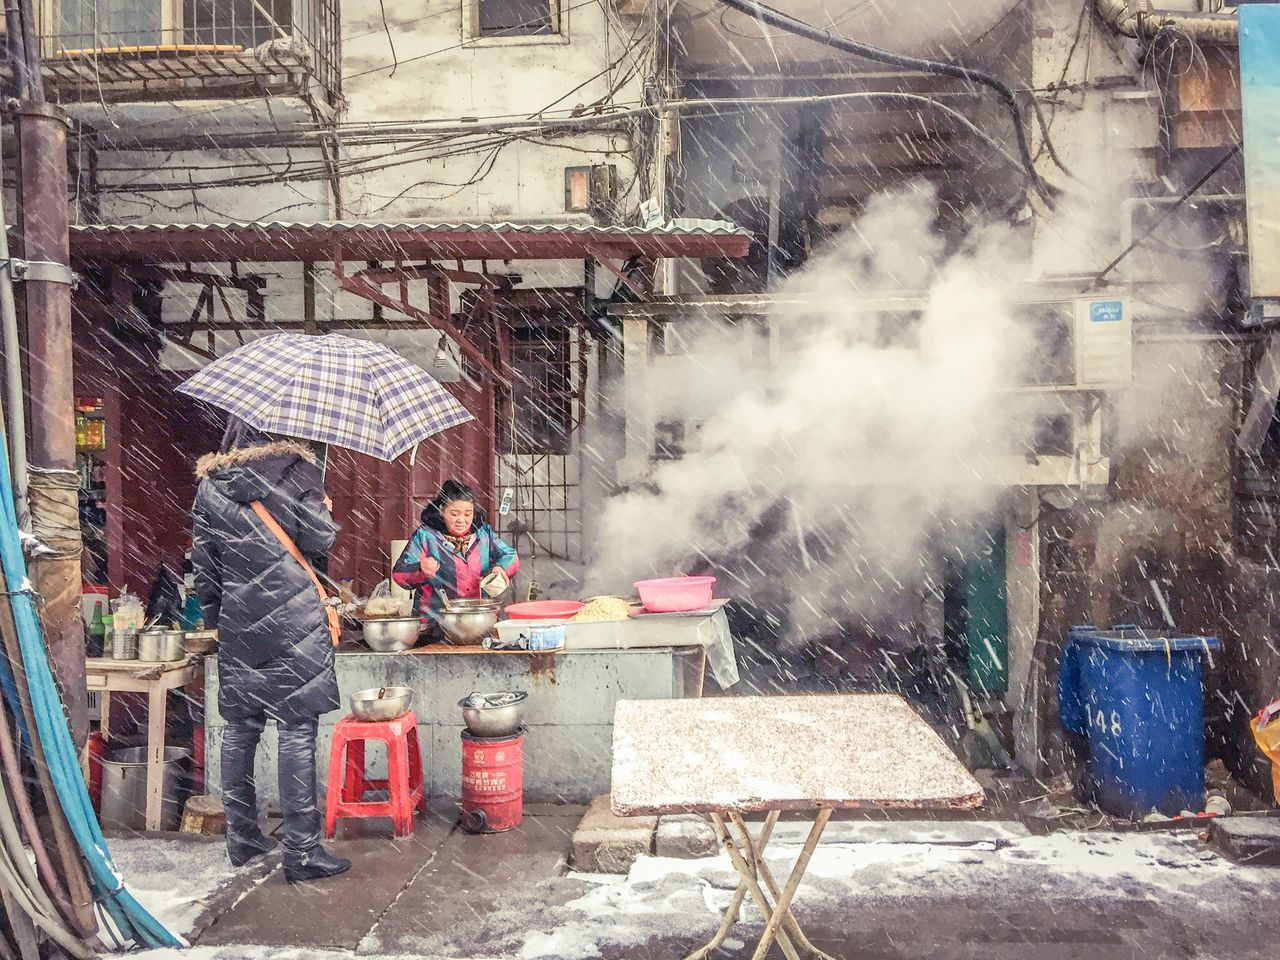 real people, smoke - physical structure, built structure, full length, two people, architecture, day, building exterior, men, outdoors, working, adult, adults only, people, only men, young adult